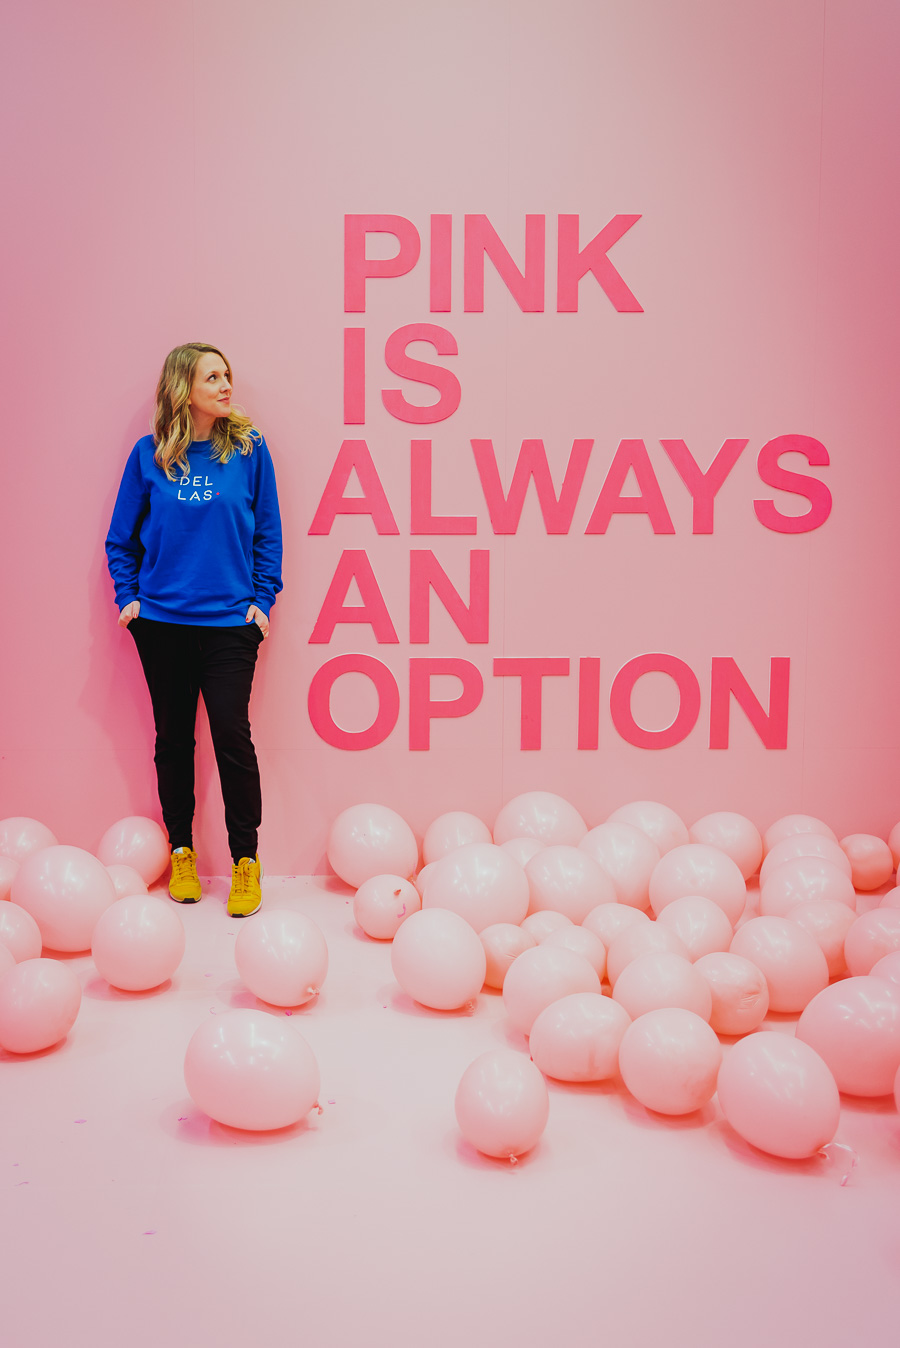 Pink is always an option